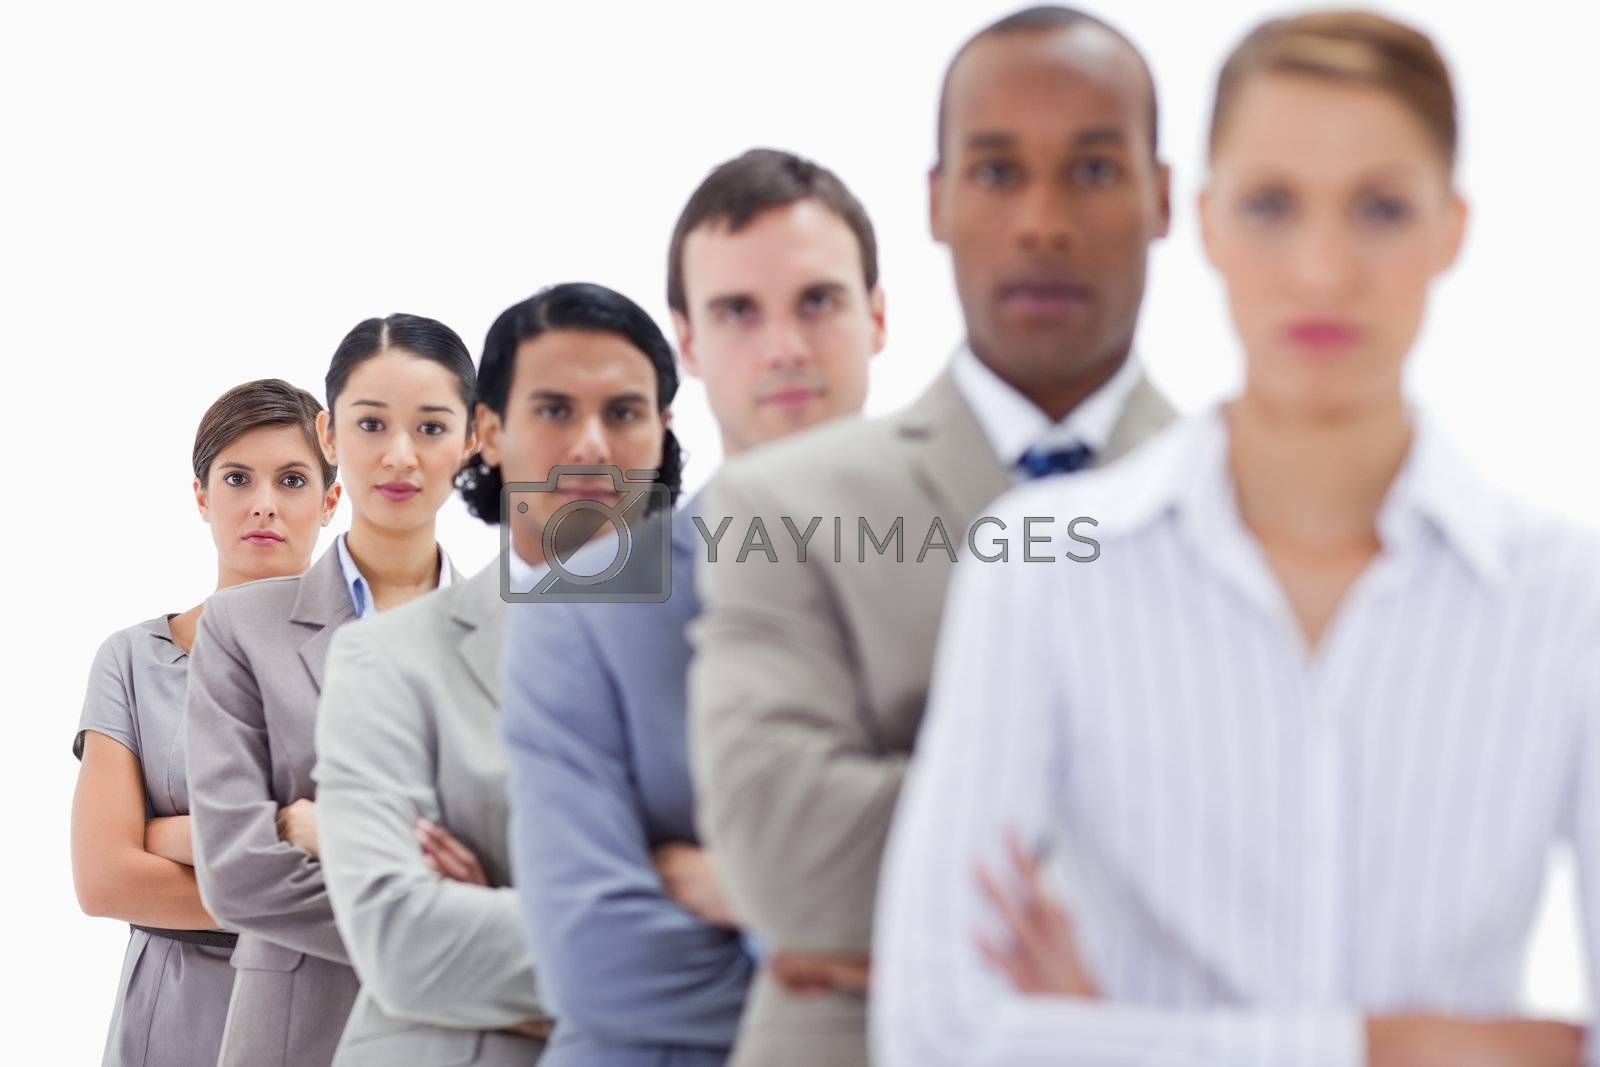 Close-up of serious workmates dressed in suits crossing their arms in a single line with focus on the last two women